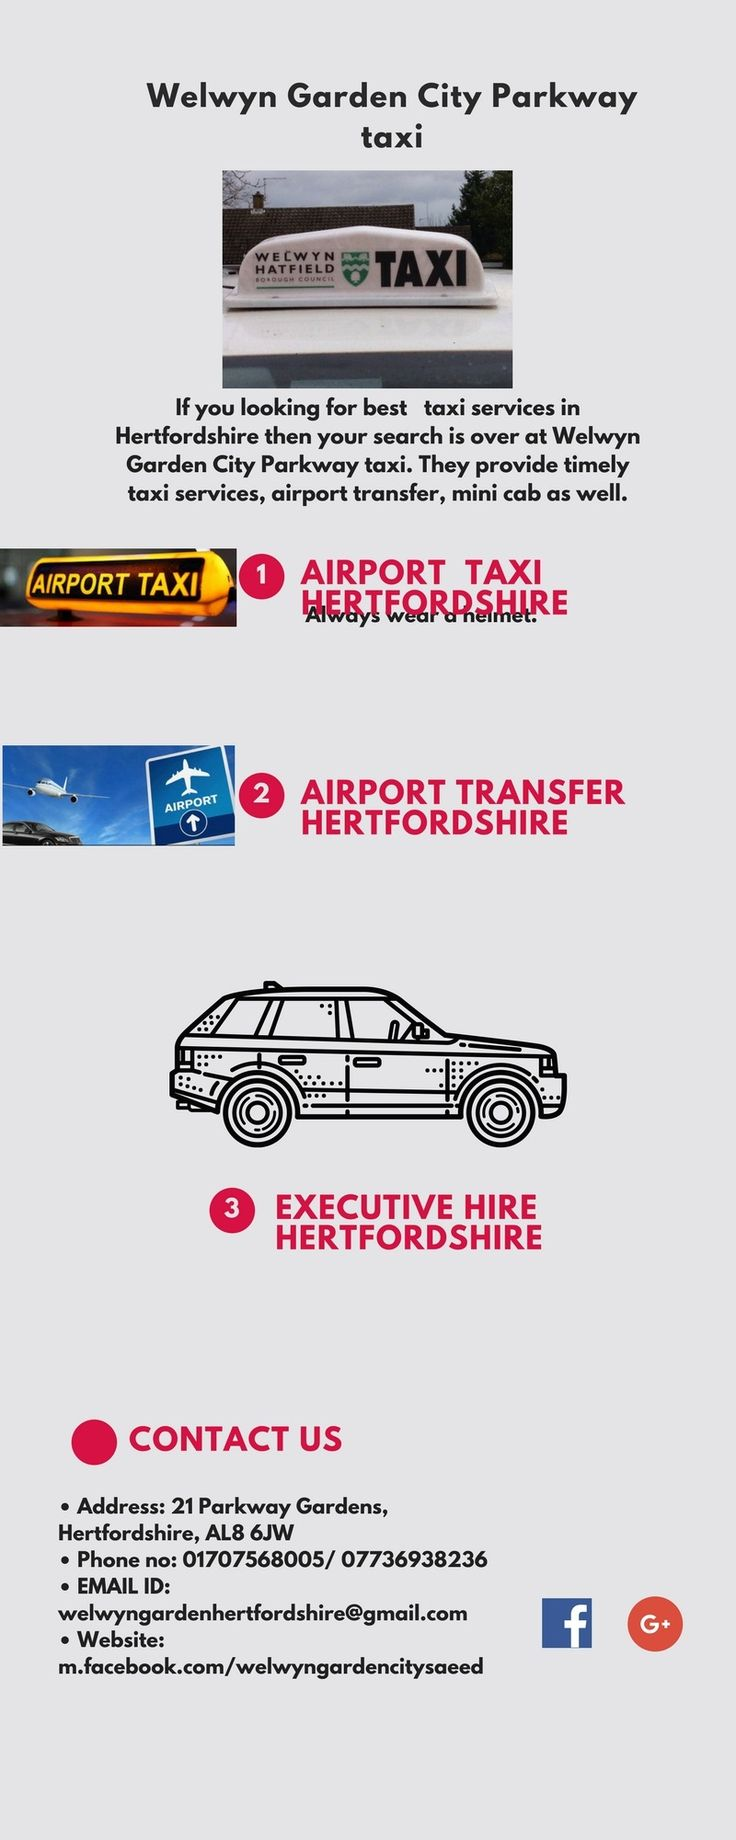 If you looking for best   taxi services in Hertfordshire then your search is over at Welwyn Garden City Parkway taxi. They provide timely taxi services, airport transfer, mini cab as well.